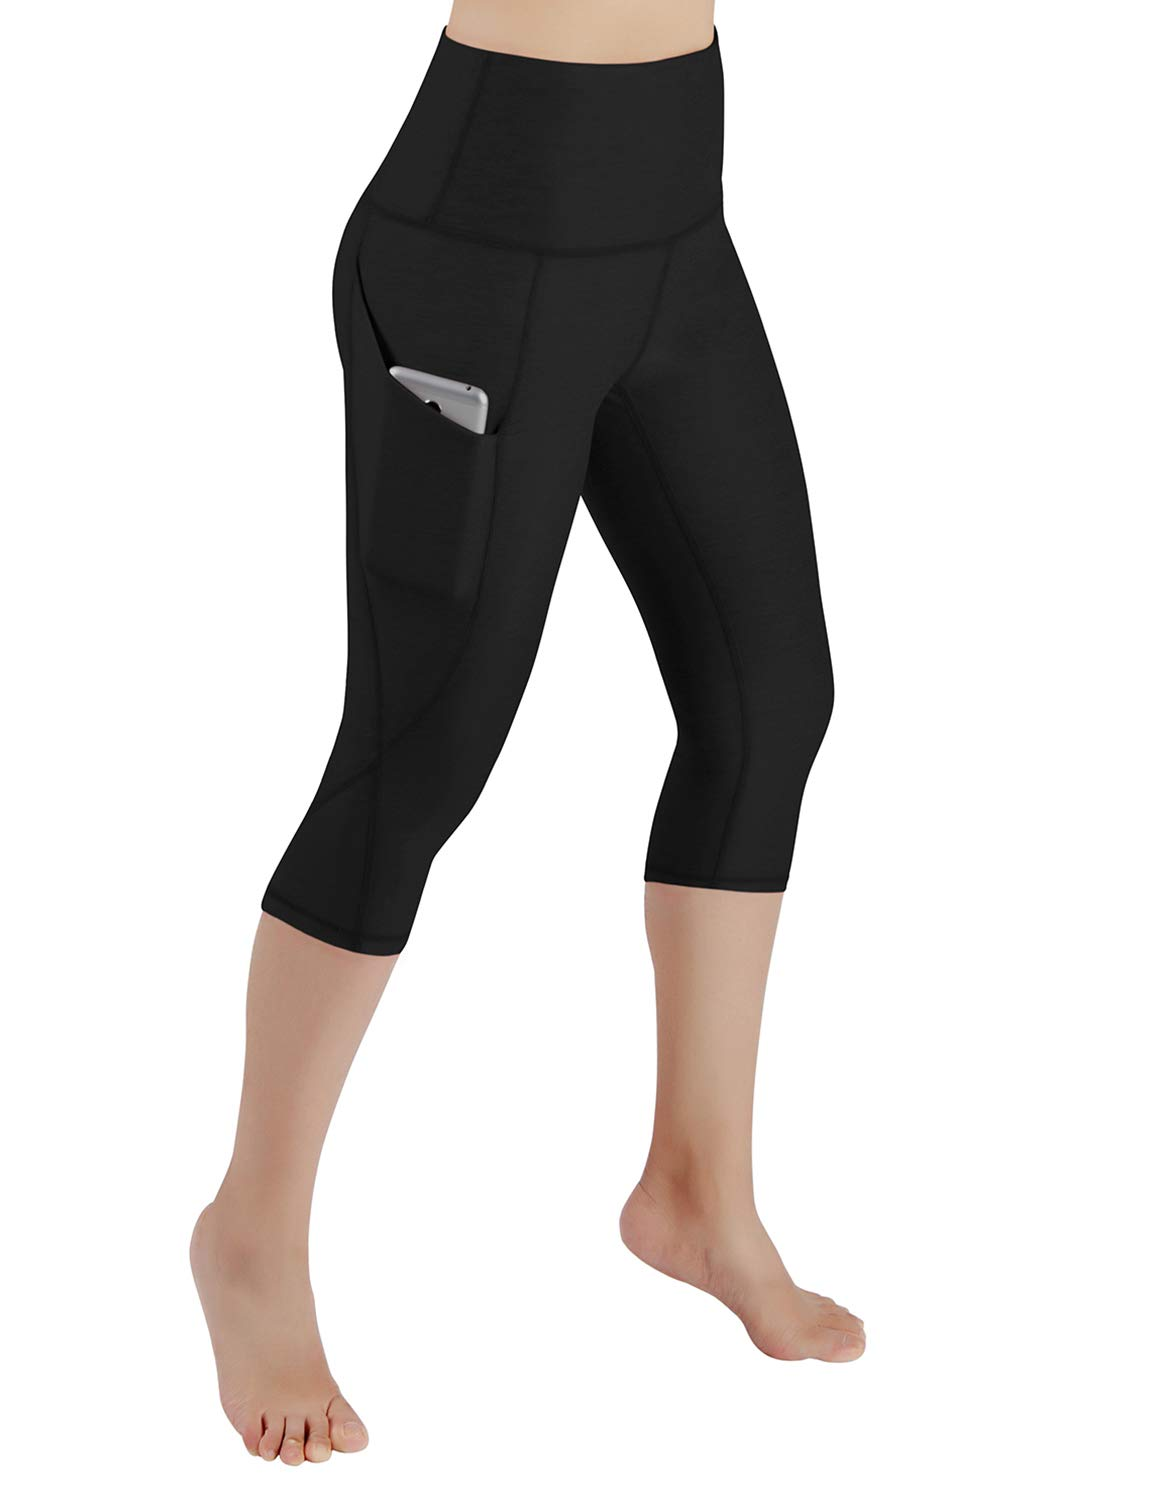 ODODOS Women's High Waist Yoga Capris with Pockets,Tummy Control,Workout Capris Running 4 Way Stretch Yoga Leggings with Pockets,Black,X-Large by ODODOS